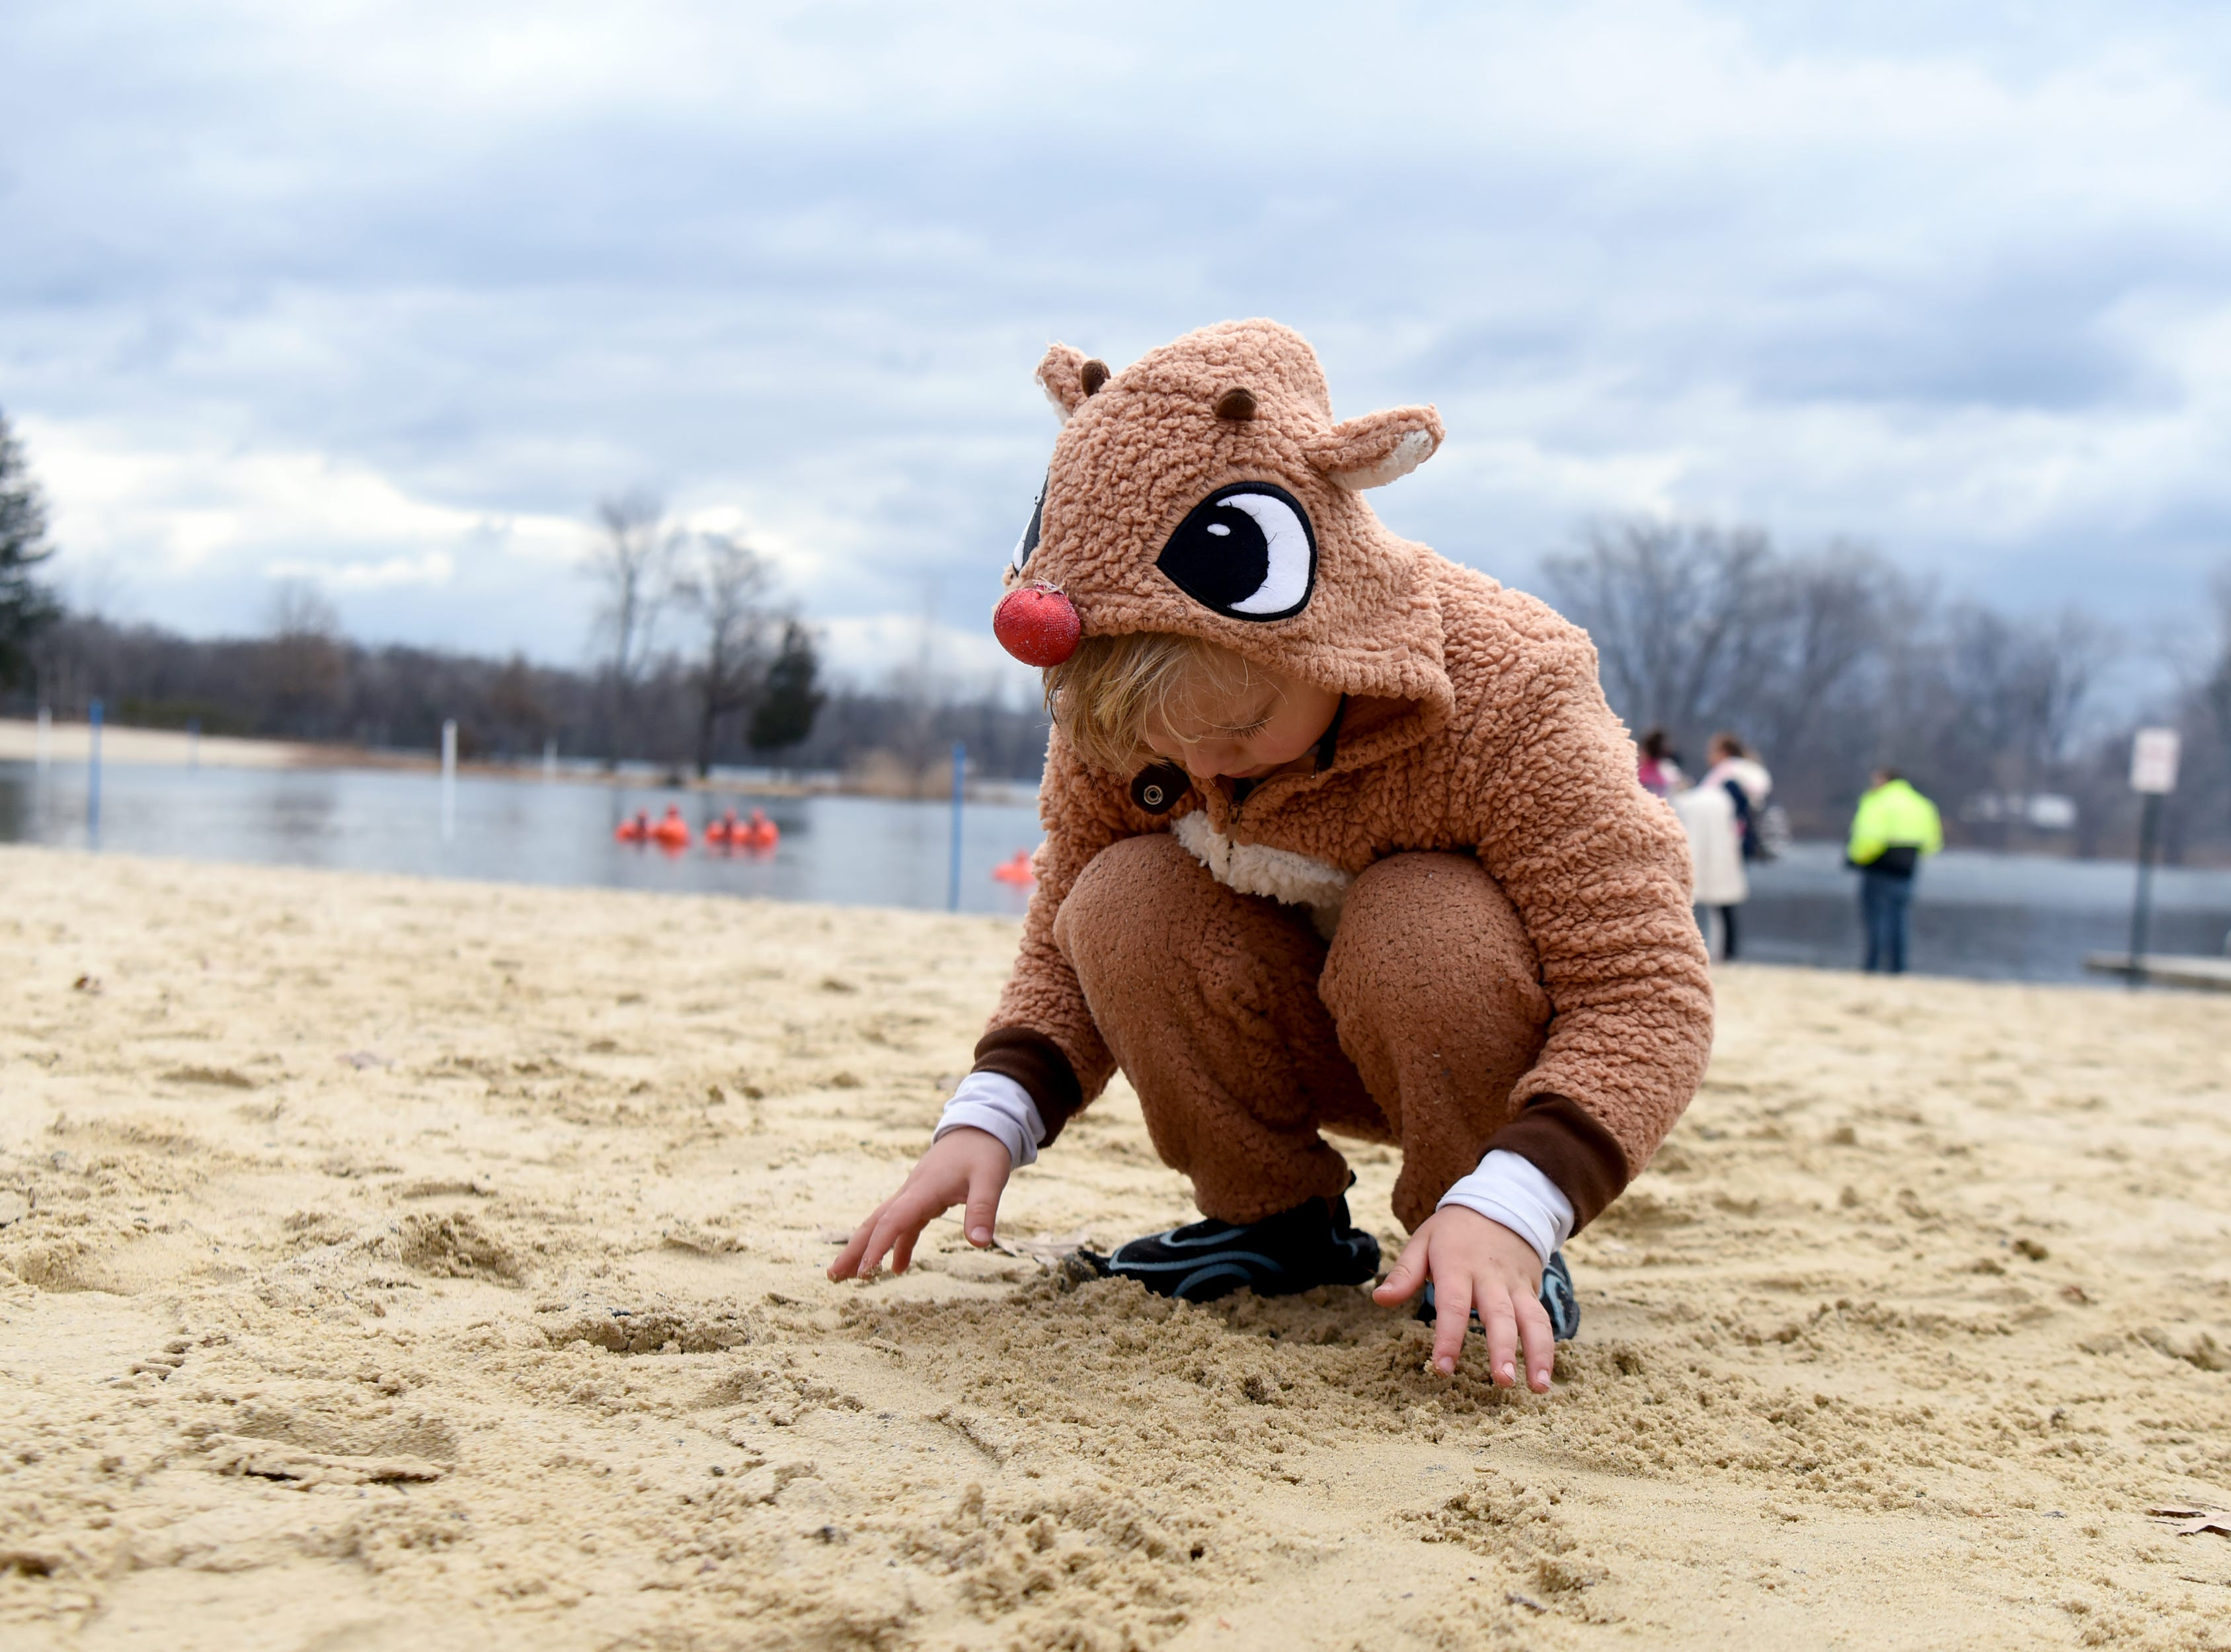 James Gronda, 3, plays in the sand before participating in the 4th annual Pequannock Polar Plunge at Pequannock Valley Park on Sunday, January 6, 2019.